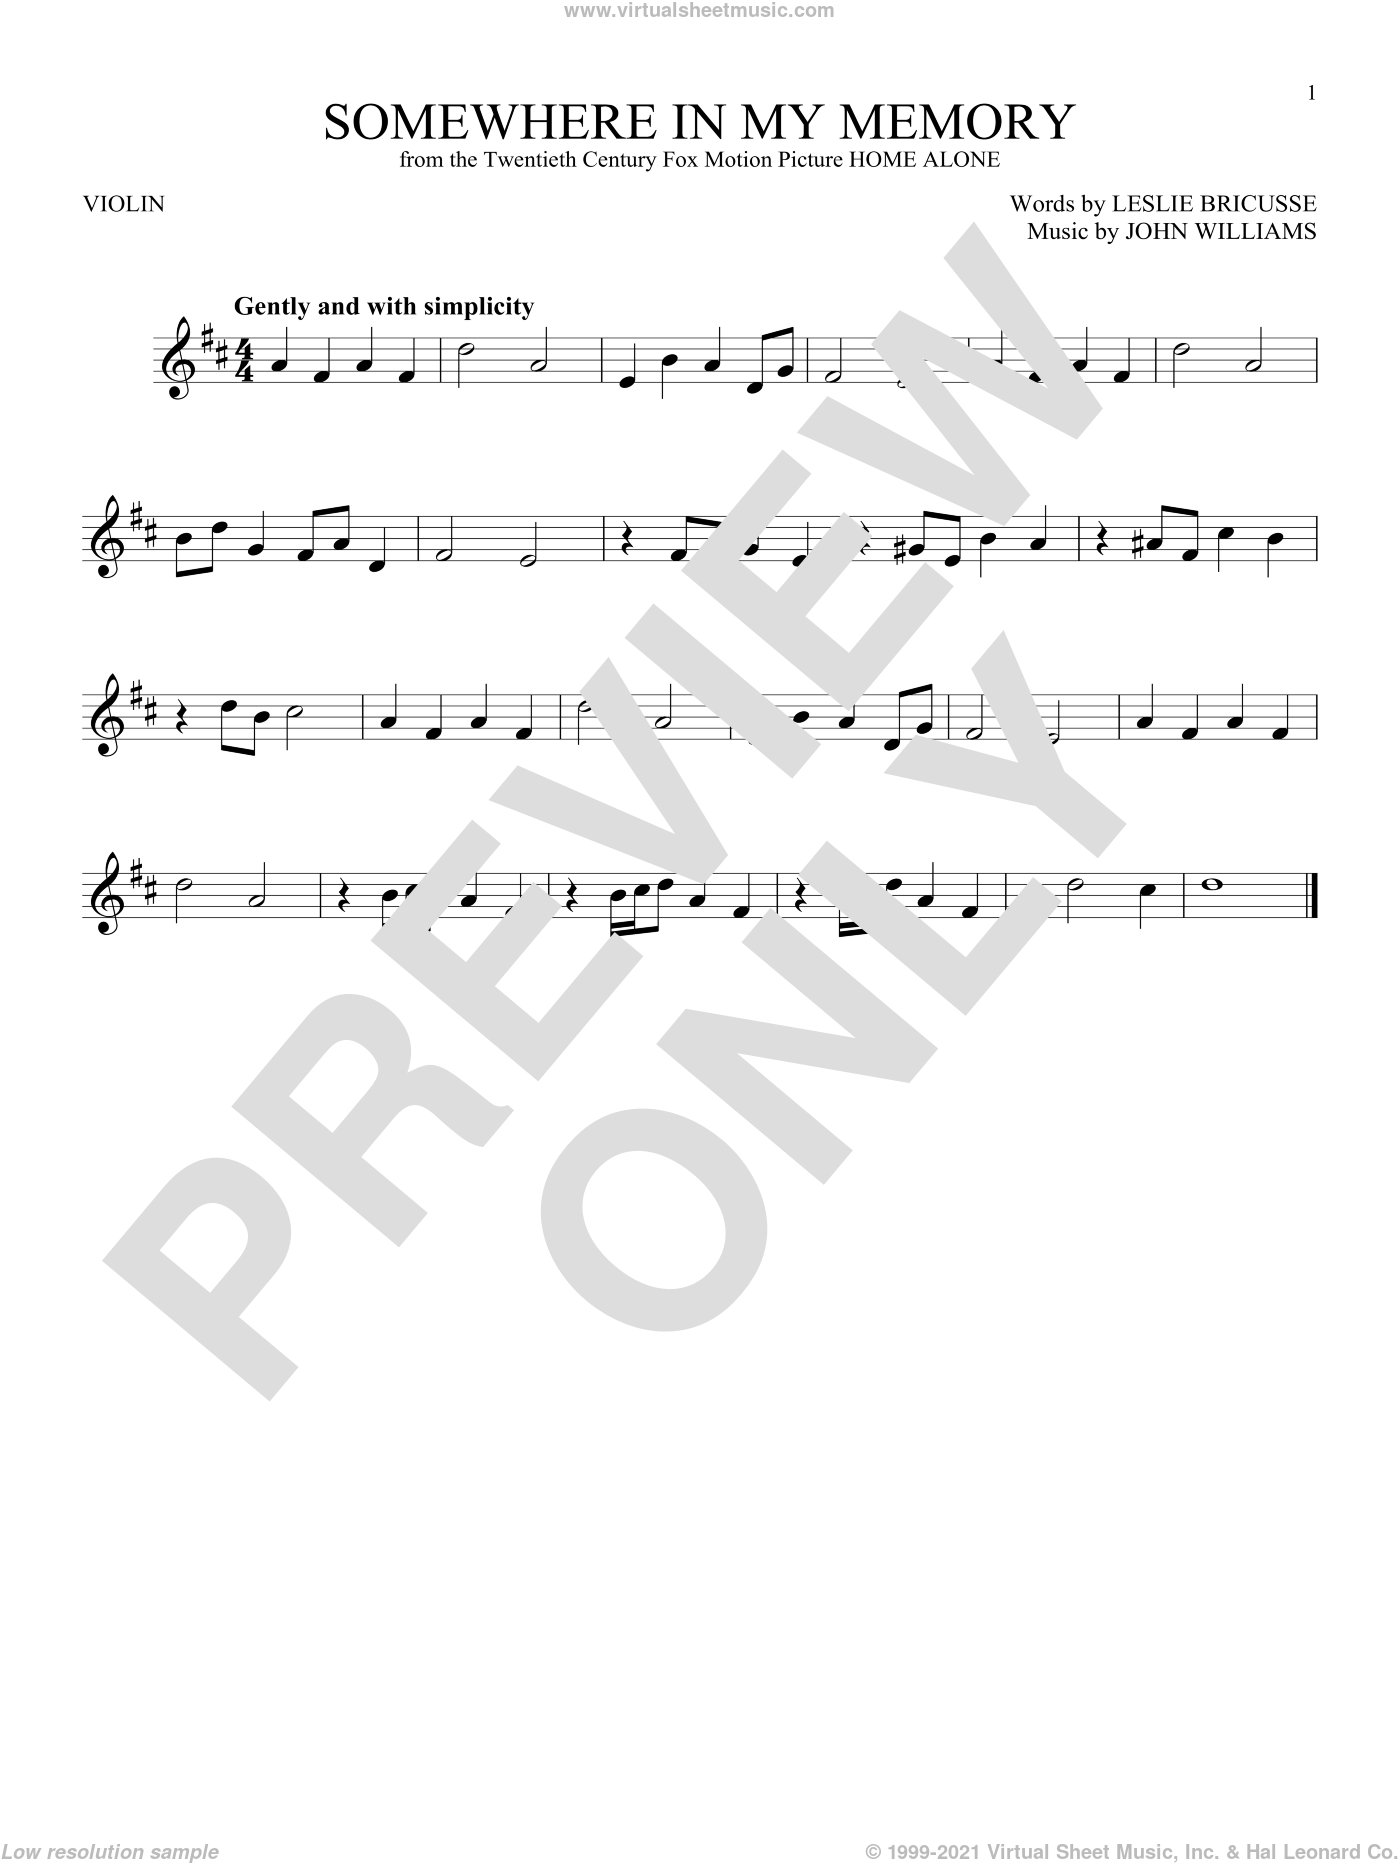 Somewhere In My Memory sheet music for violin solo by John Williams and Leslie Bricusse, intermediate skill level